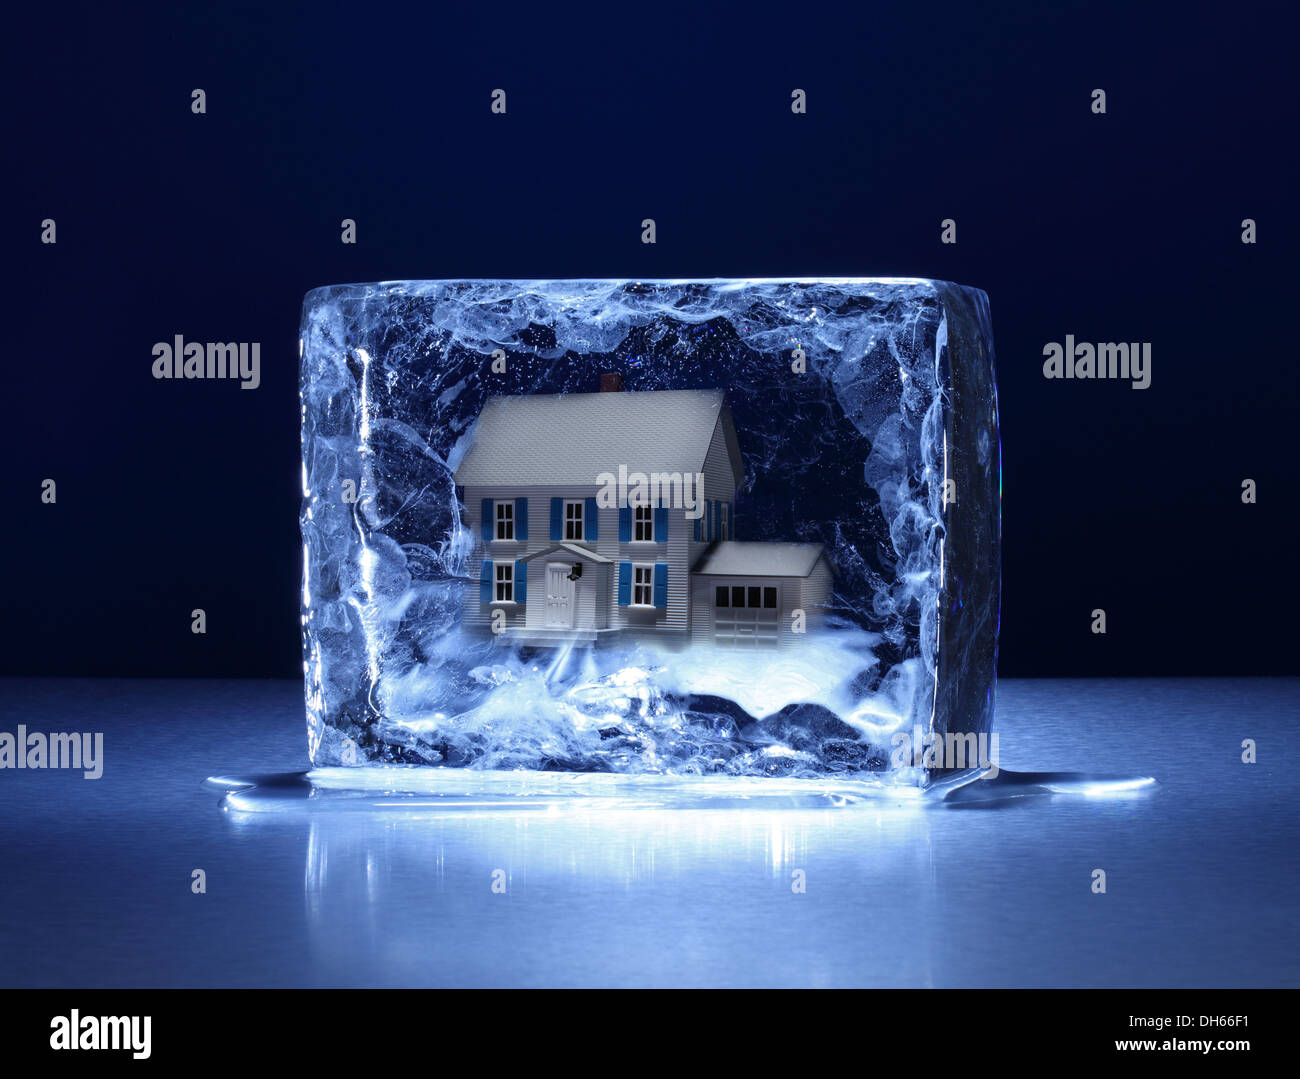 A model house frozen in a clear block of ice - Stock Image